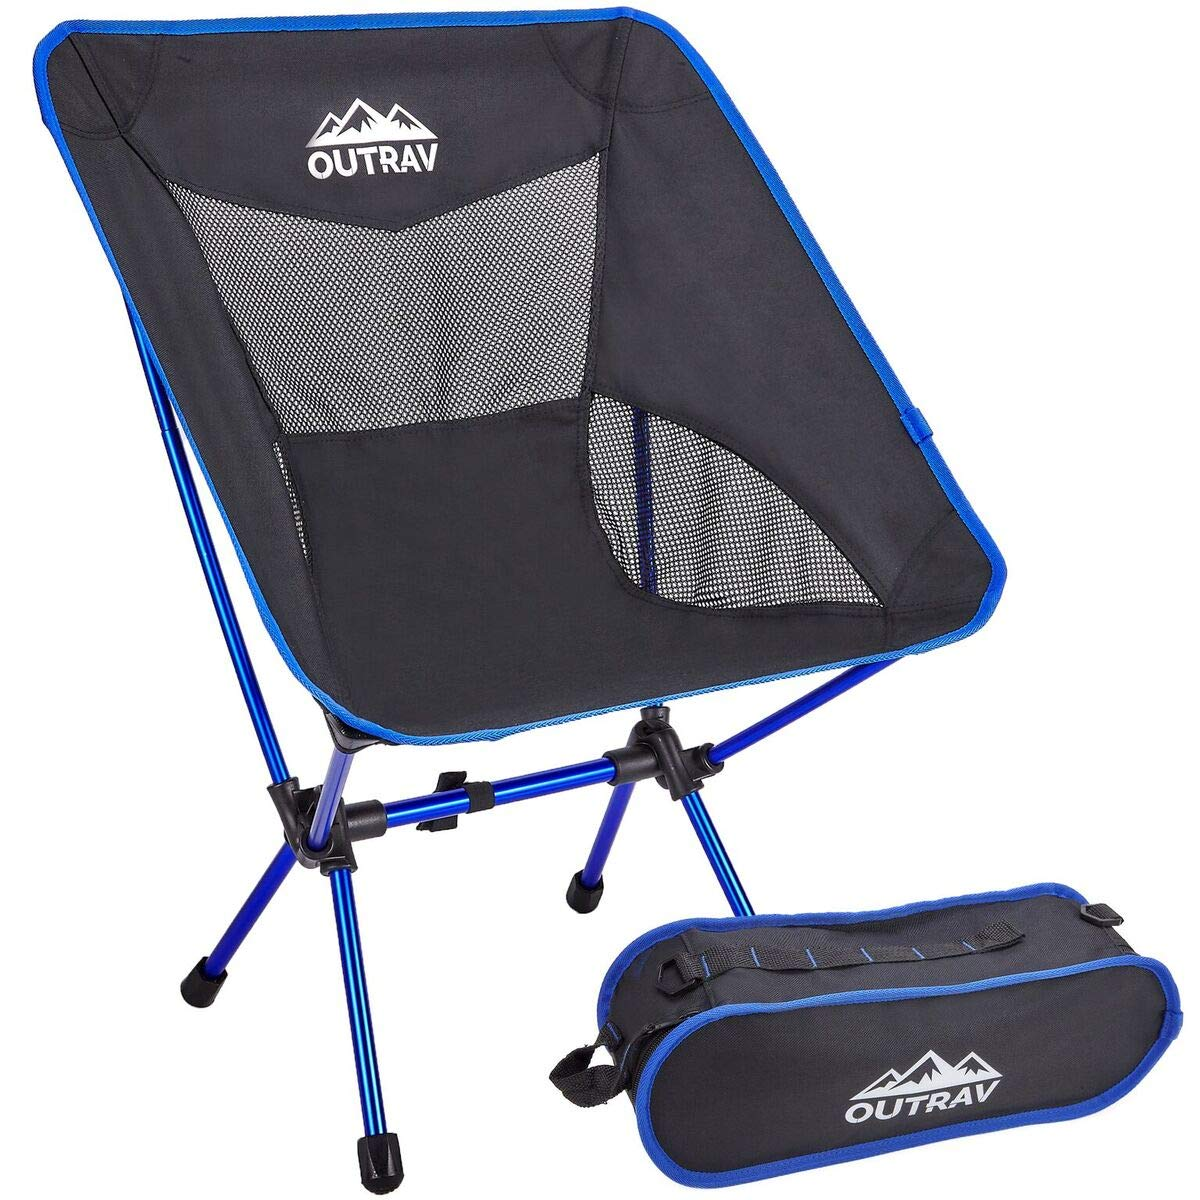 Outrav Portable Hiking Camping Chair, Lightweight Compact Folding Backpacking Chair, Heavy Duty 330lbs Capacity with Carry Bag, Breathable and Comfortable for Outdoor, BBQ, Hiking, Picnic, Fishing